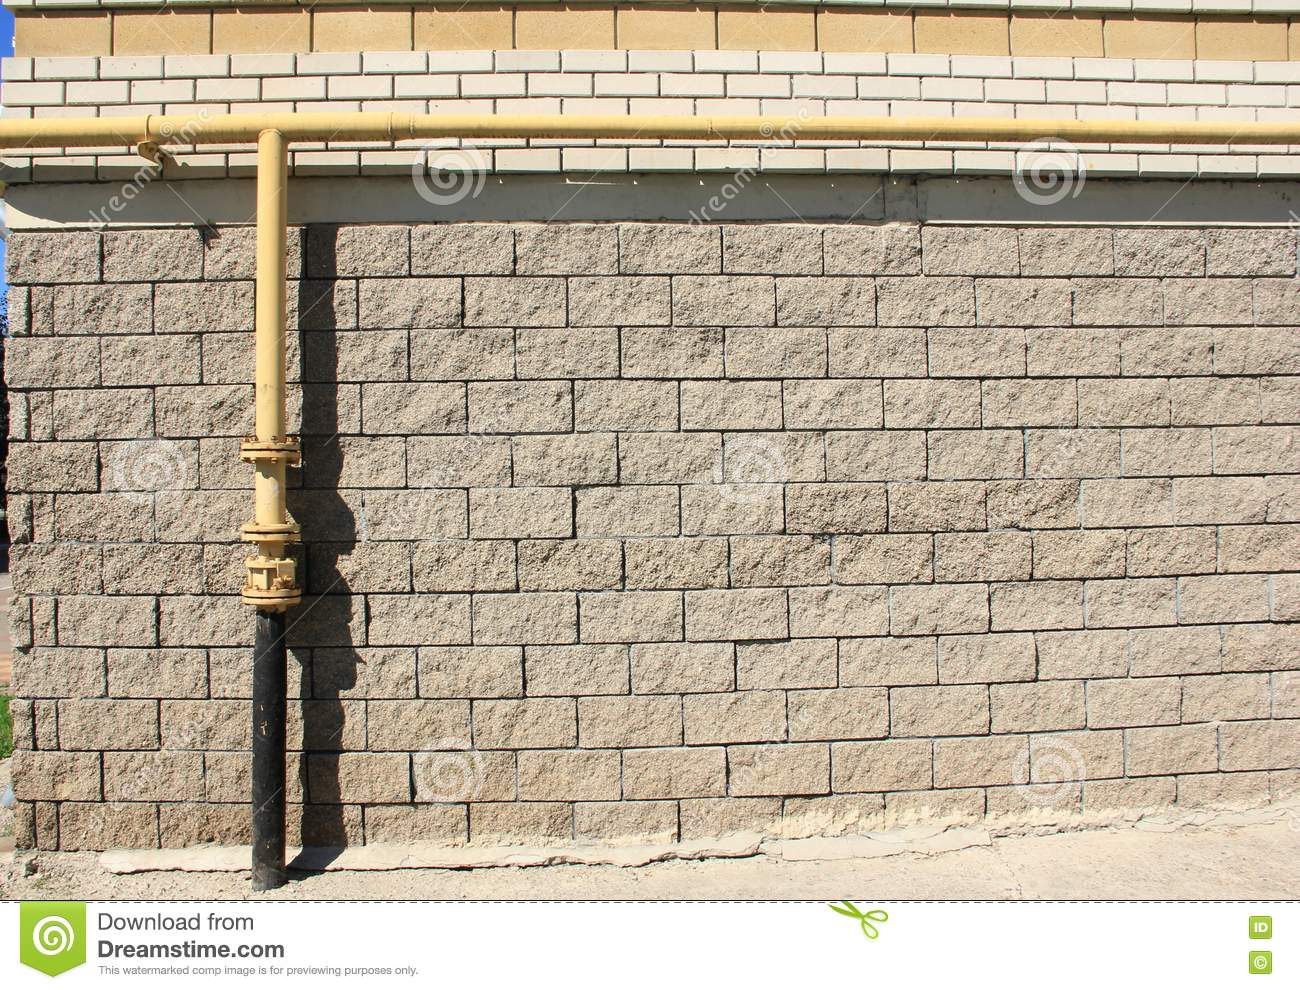 Gas pipe on a brick wall